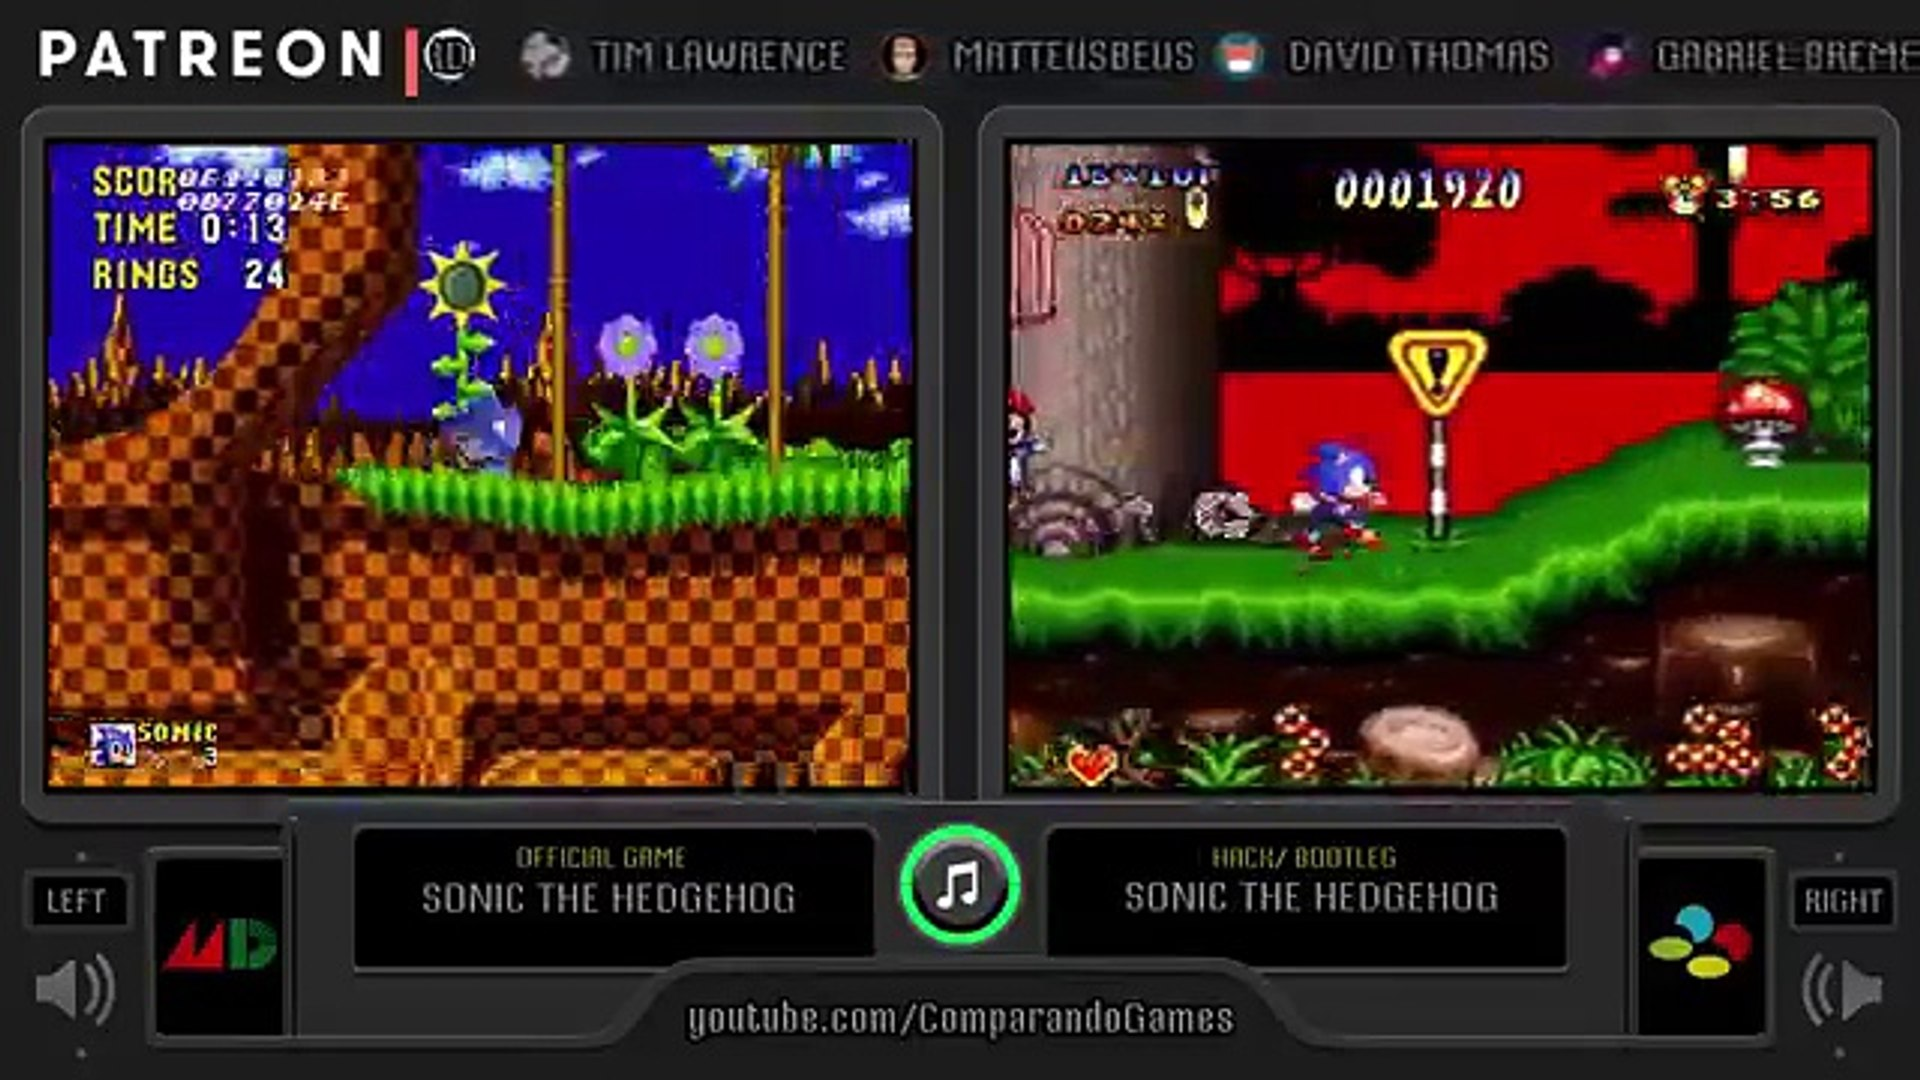 Is Sonic The Hedgehog On Snes Possible Dailymotion Video